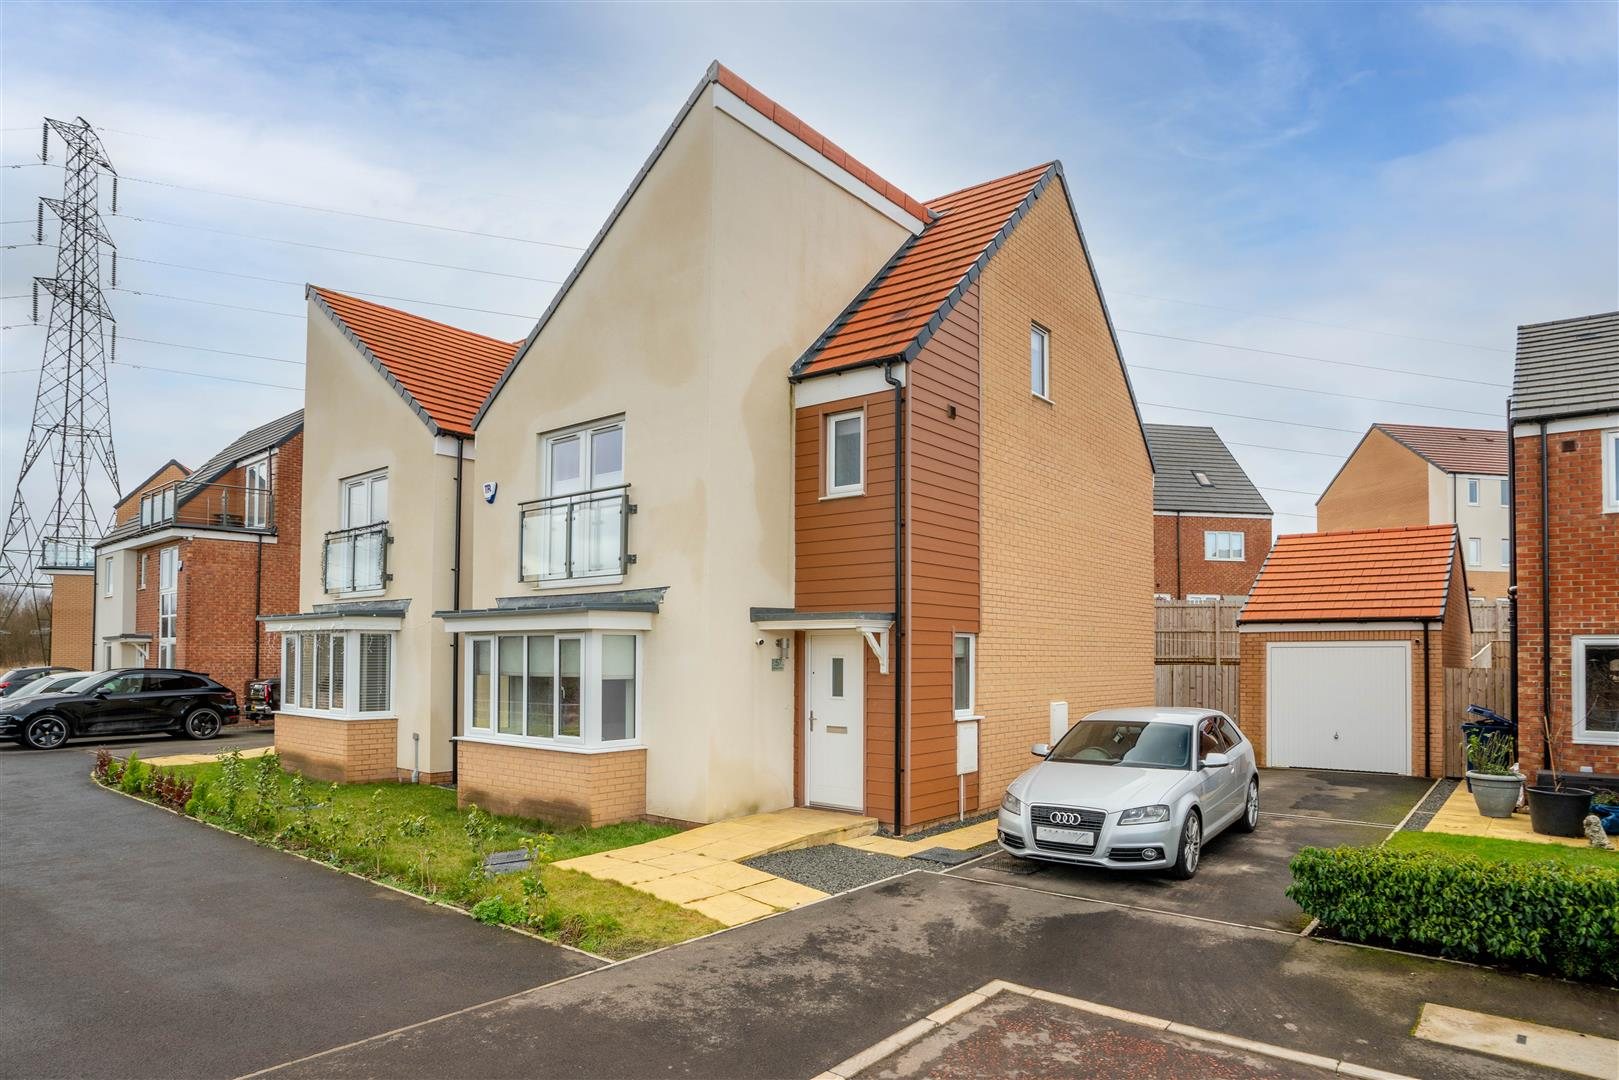 4 bed detached house for sale in Newcastle Upon Tyne, NE13 9DU, NE13